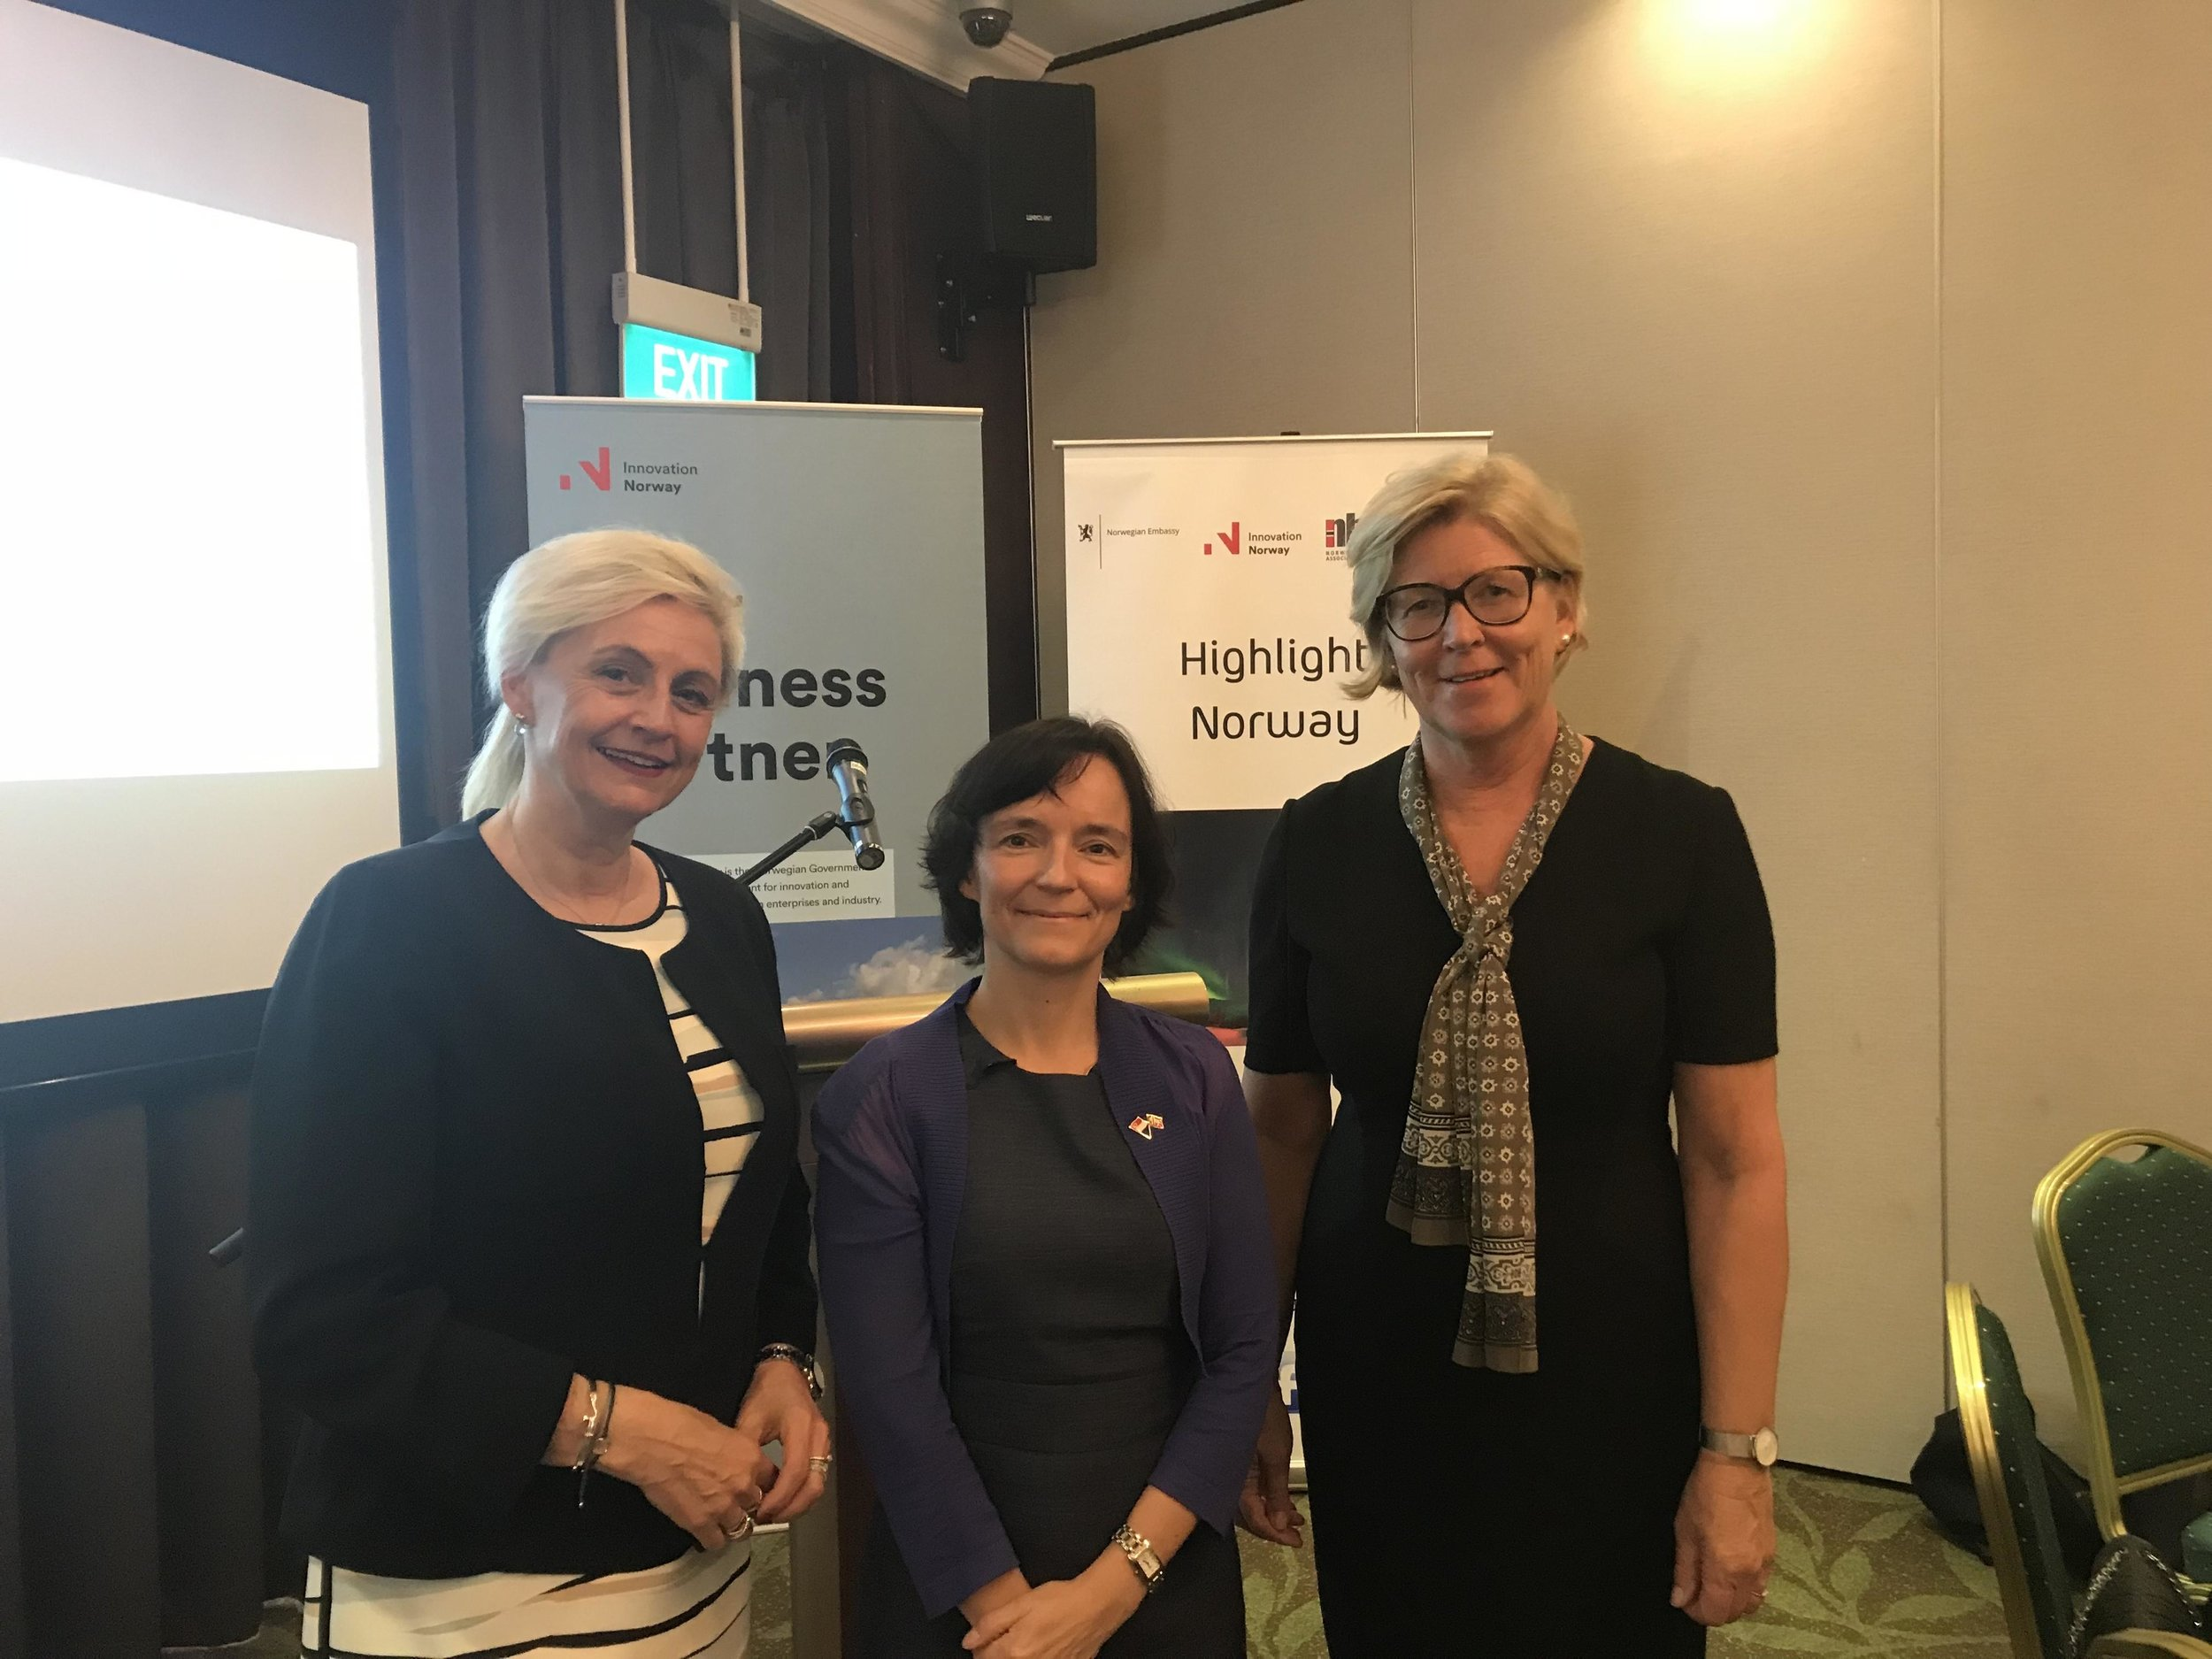 From right: Torunn Aas Taralrud, Head of Innovation Norway, Singapore, Anita Nergaard, Norway's Ambassador to Singapore. Turid E. Solvang, Founder/CEO FutureBoards